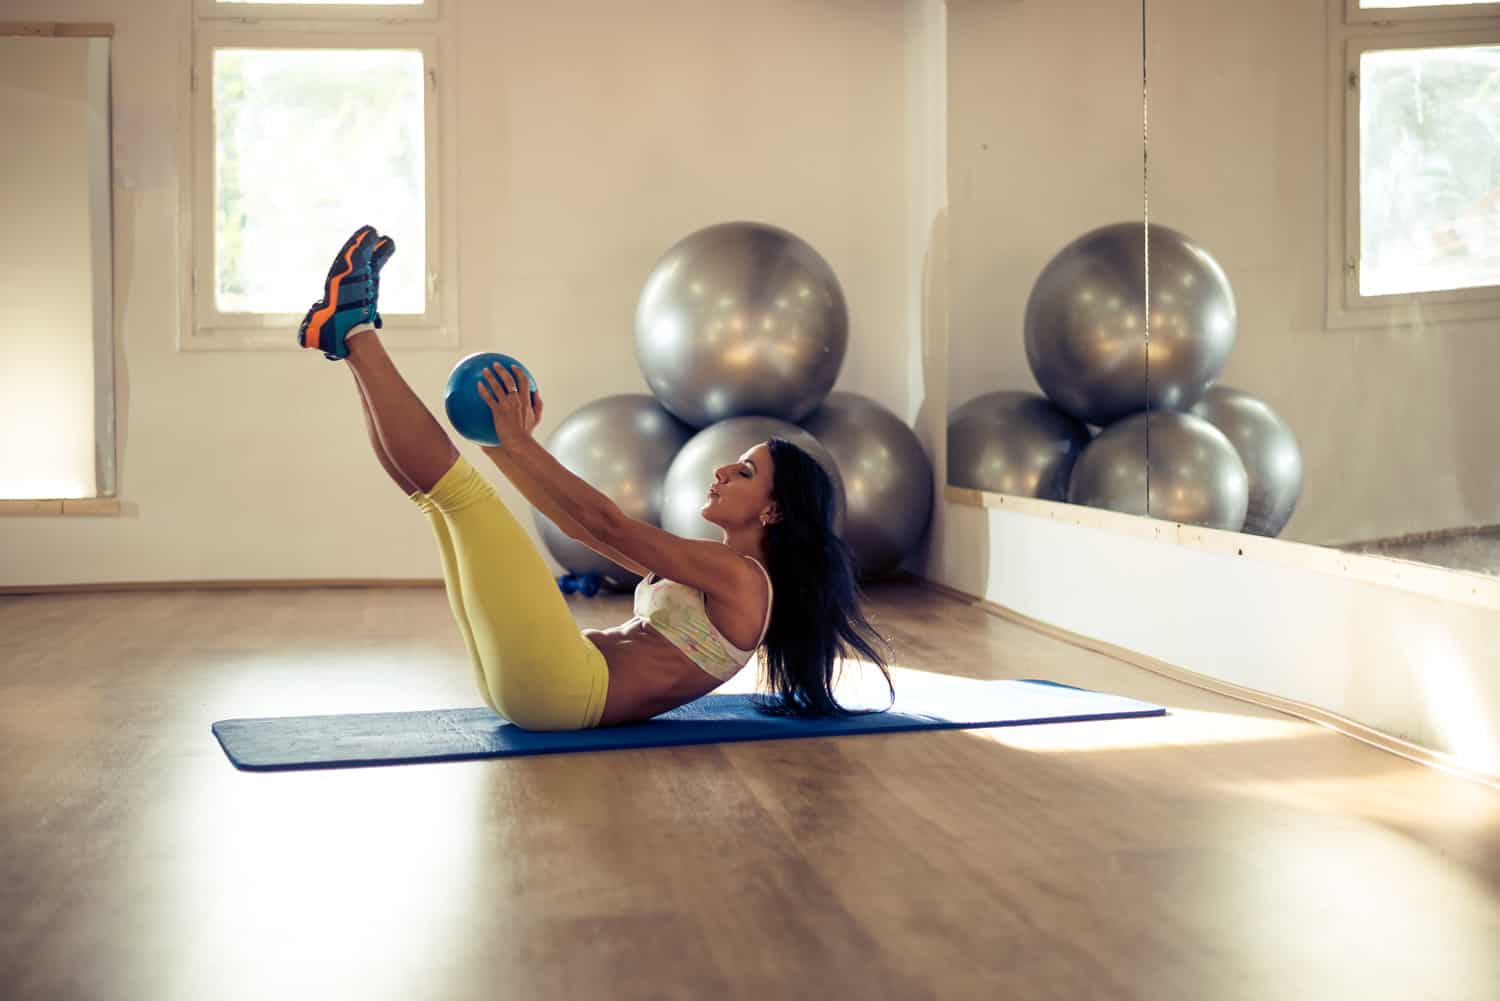 Staying in shape, woman holding an overball